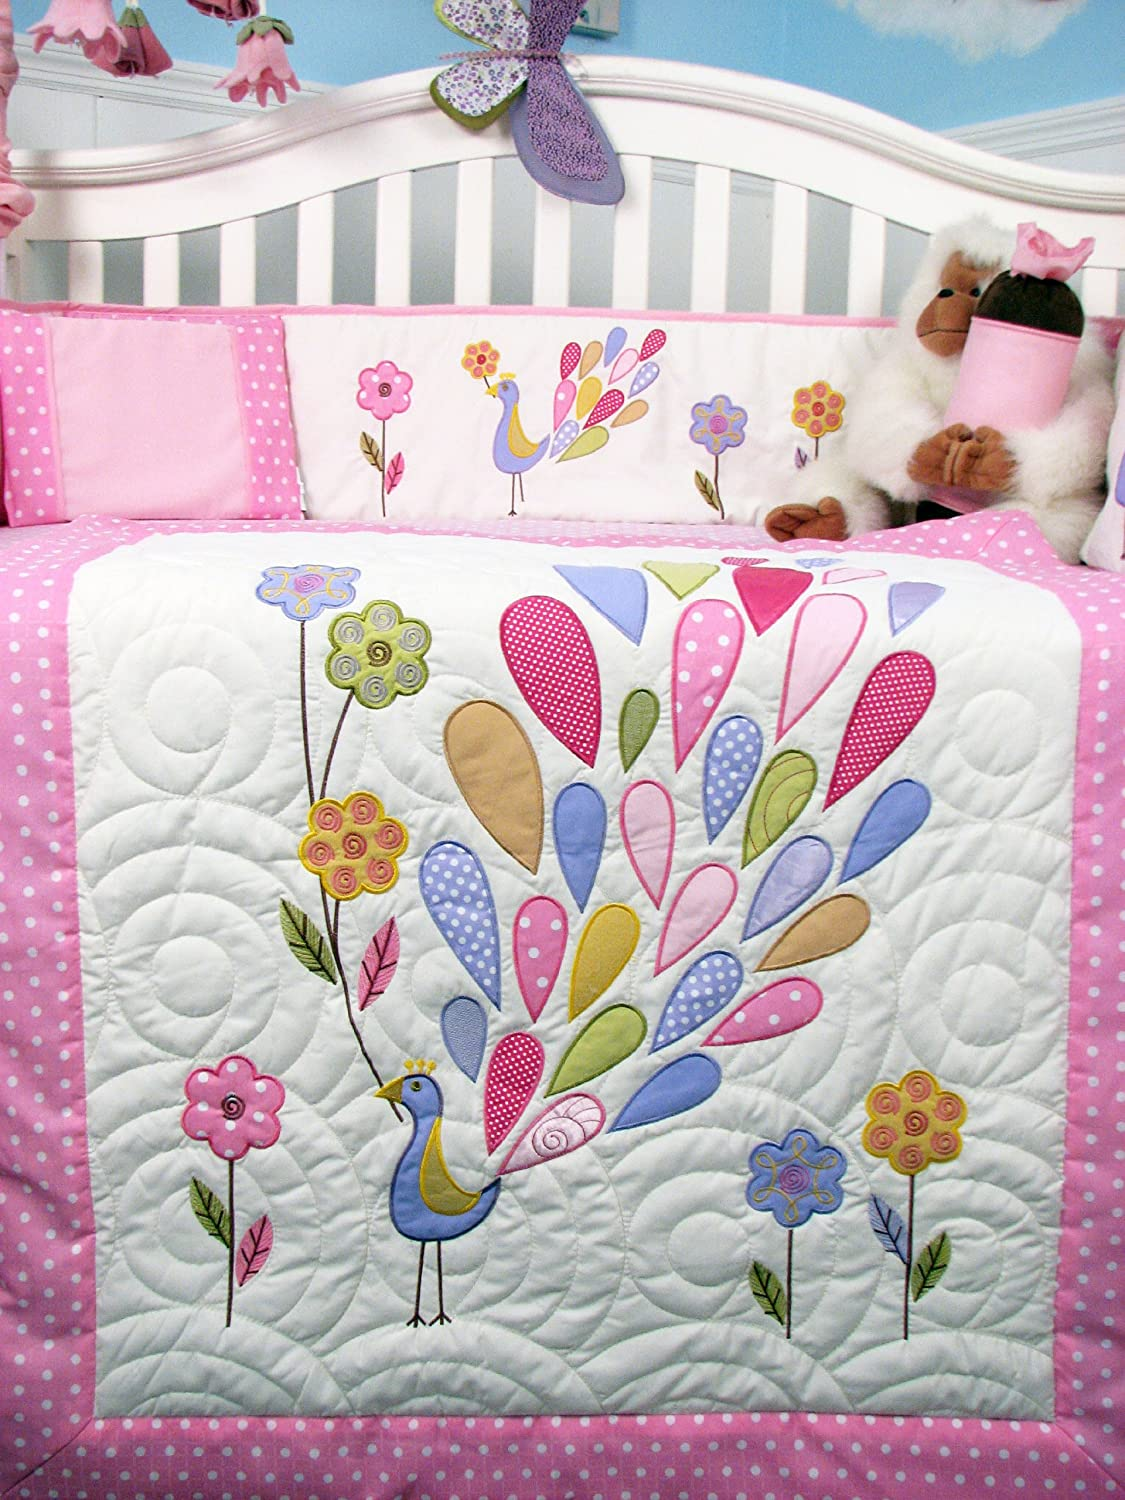 superb Peacock Baby Bedding Sets Part - 9: Amazon.com : SOHO Gloria the Peacock Crib Nursery Bedding Set 14 pcs : Crib  Bedding Sets For Girls : Baby